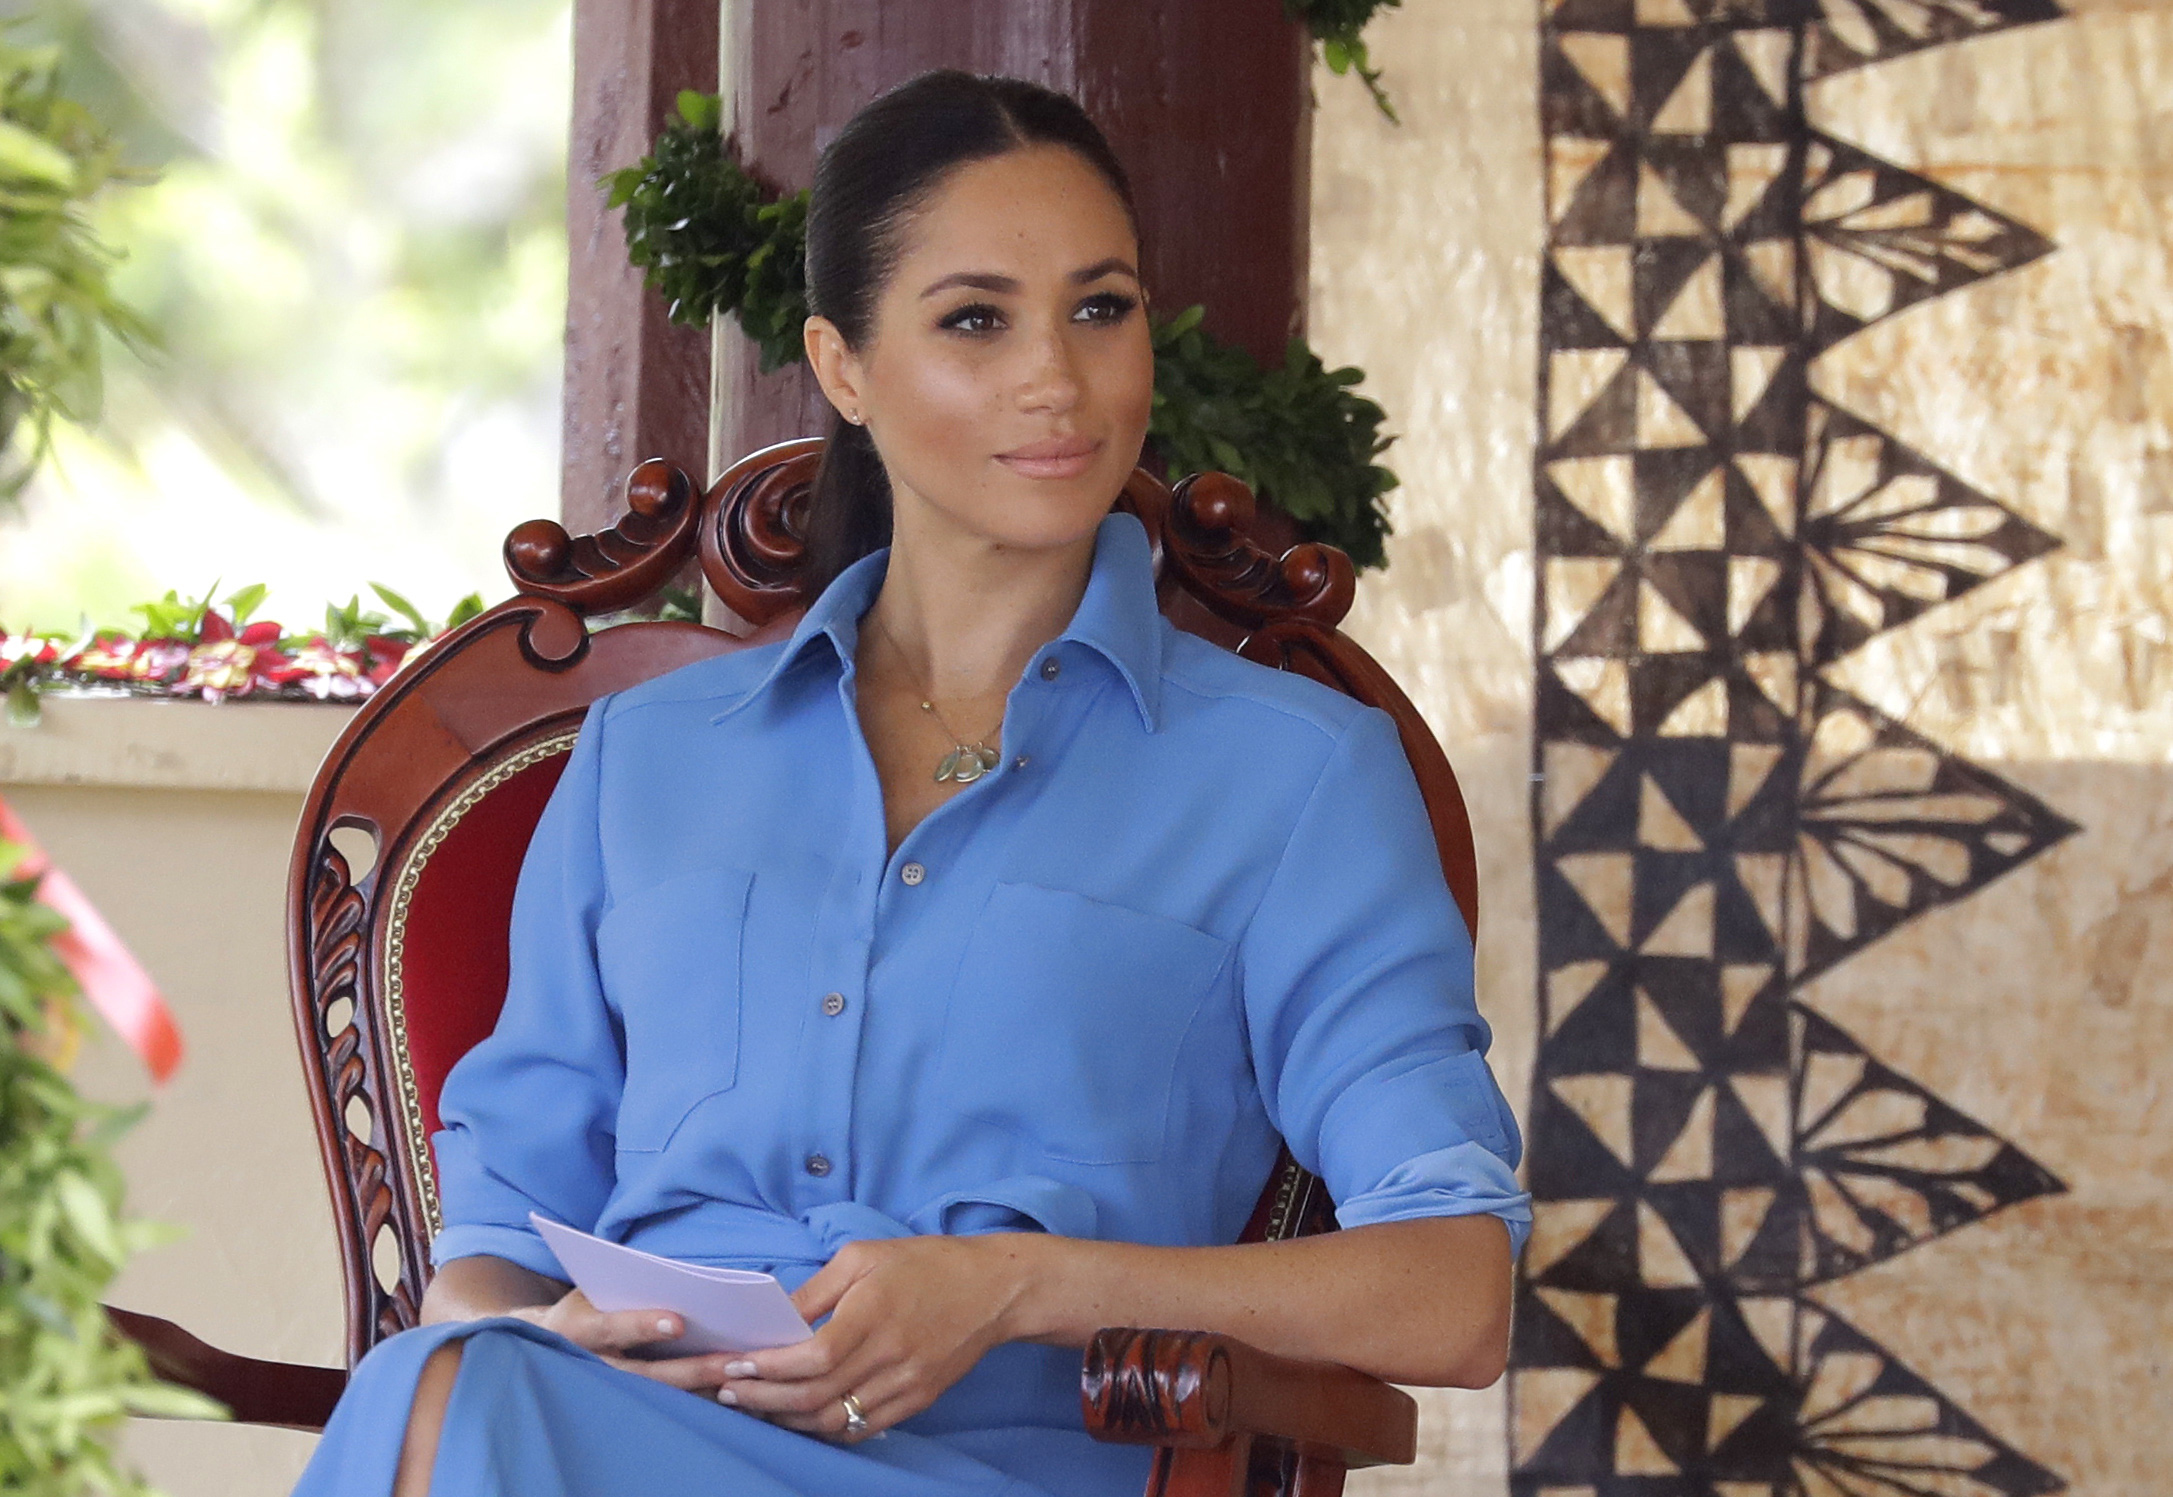 Meghan, Duchess of Sussex talks with students during a visit to Tupou College in Tonga on October 26, 2018. (Photo by Kirsty Wigglesworth - Pool/Getty Images)